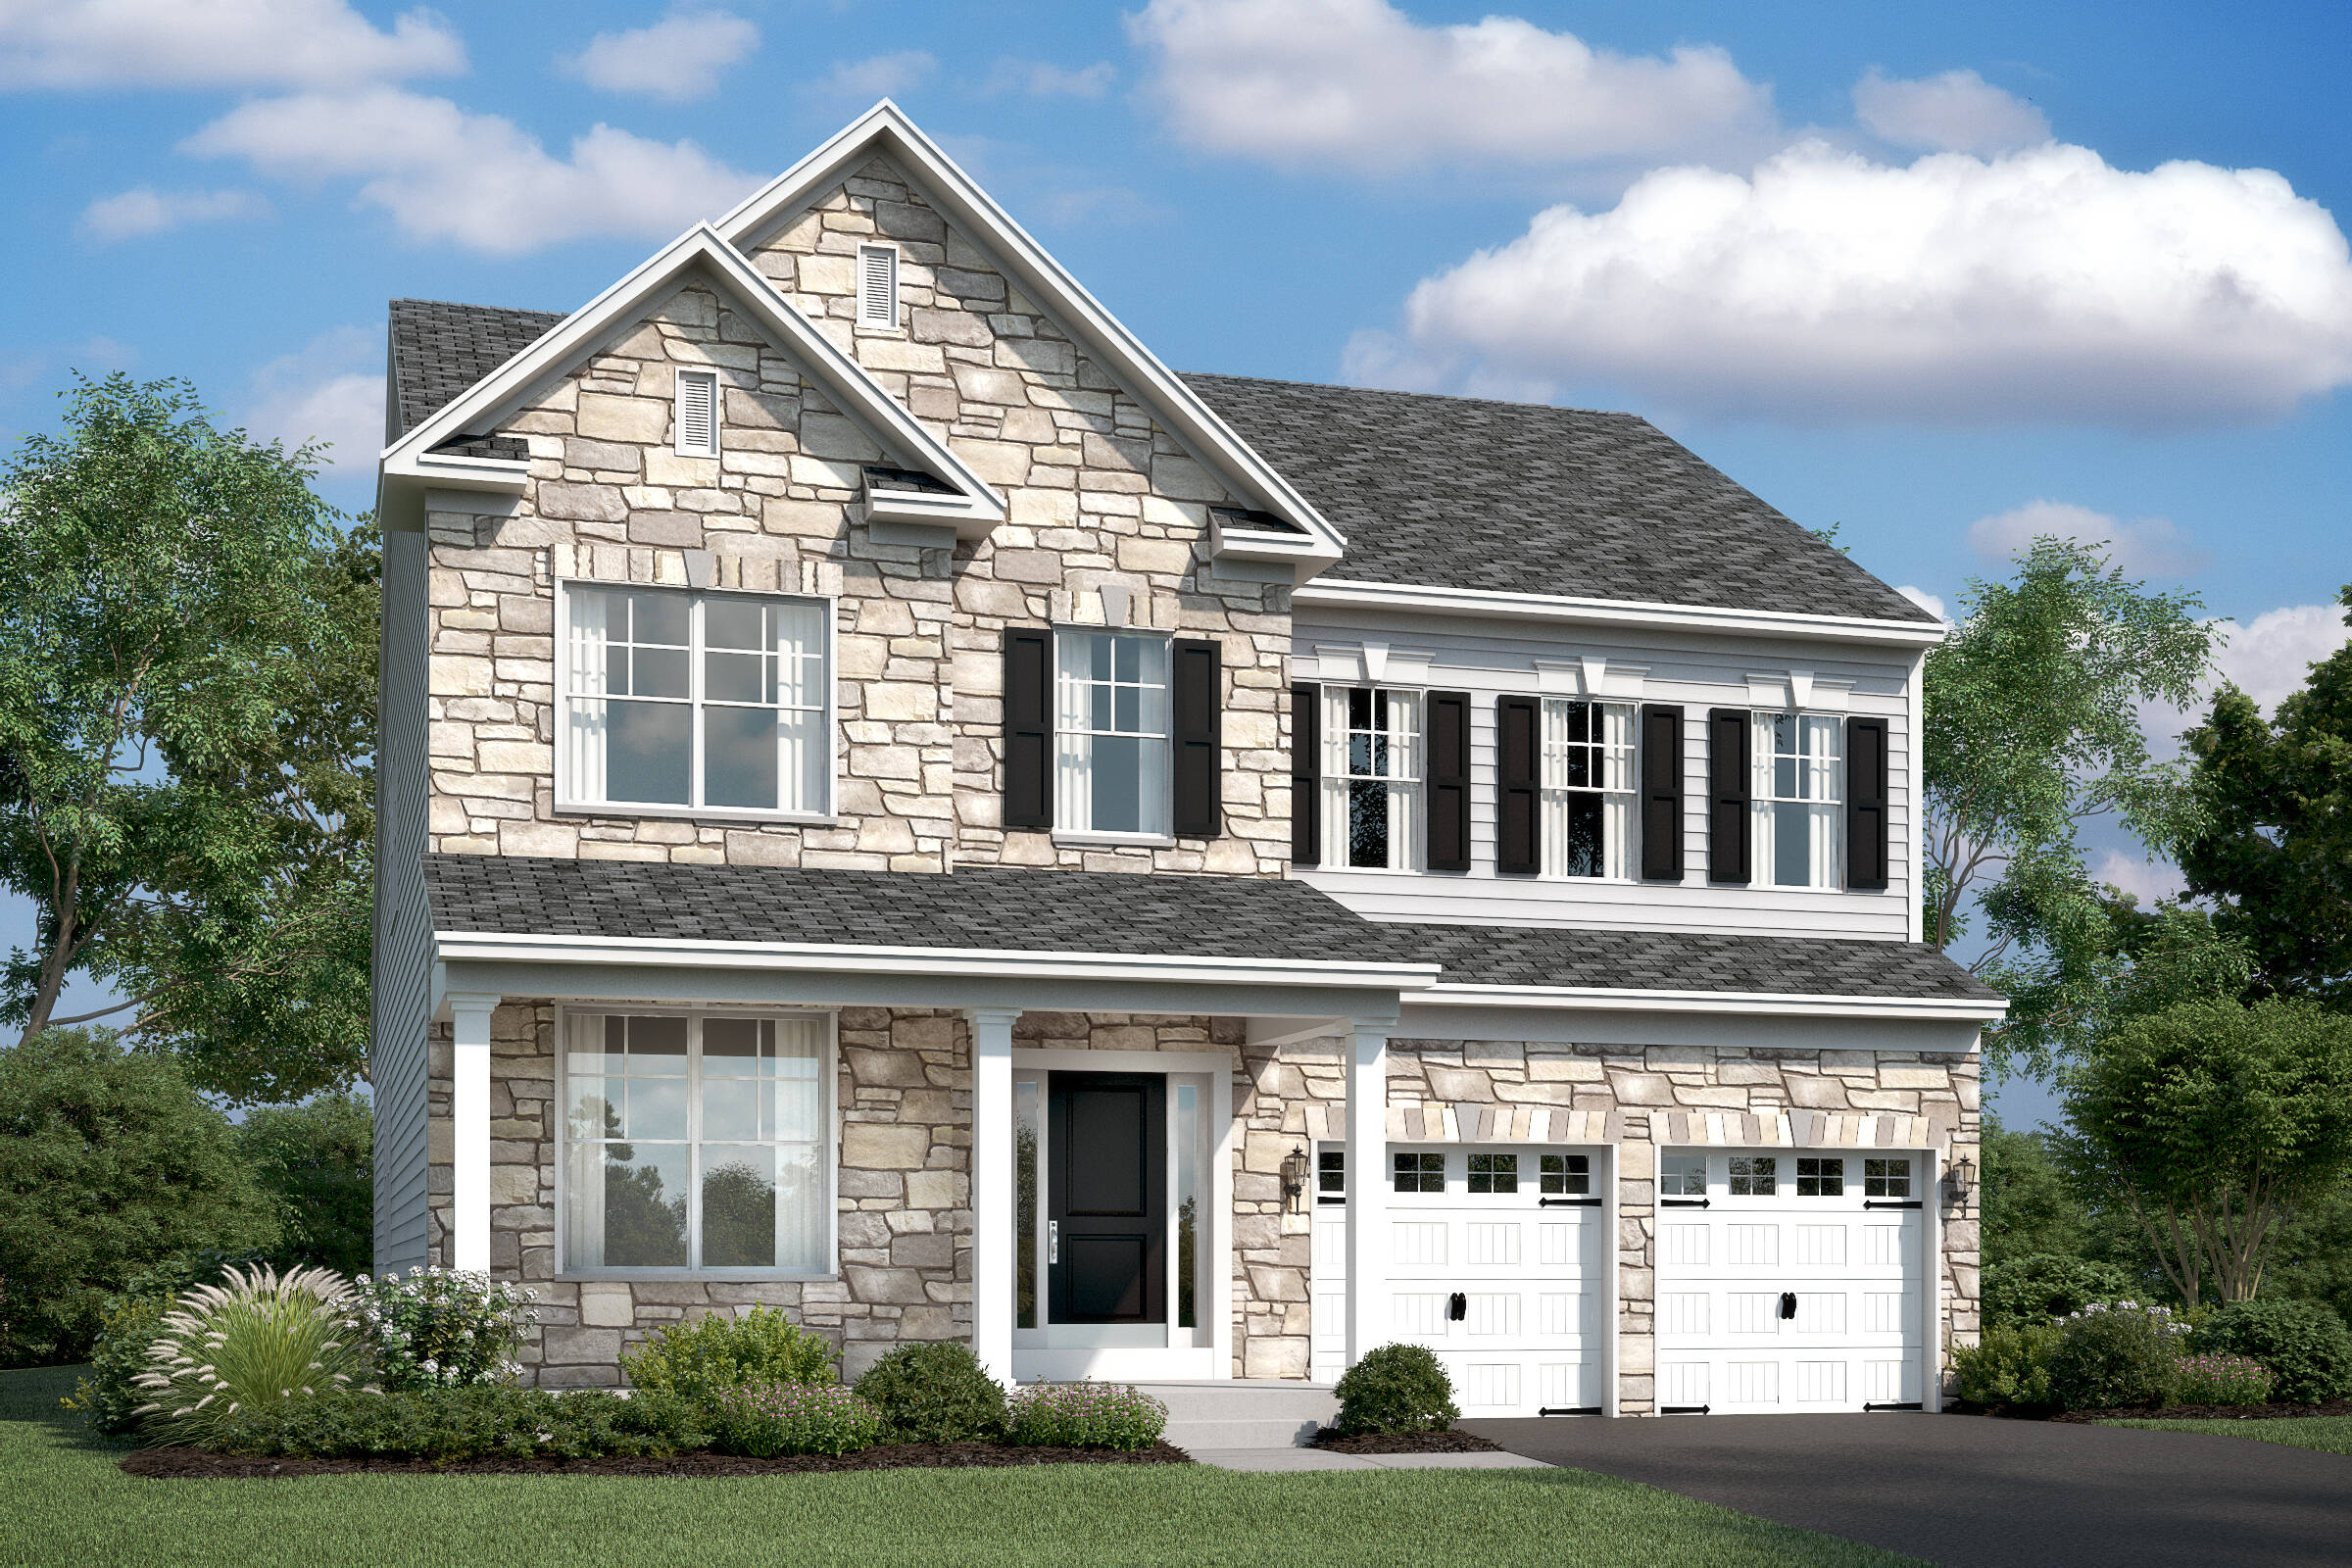 callahan-i-ct-new-homes-at-eden-terrace-in-maryland